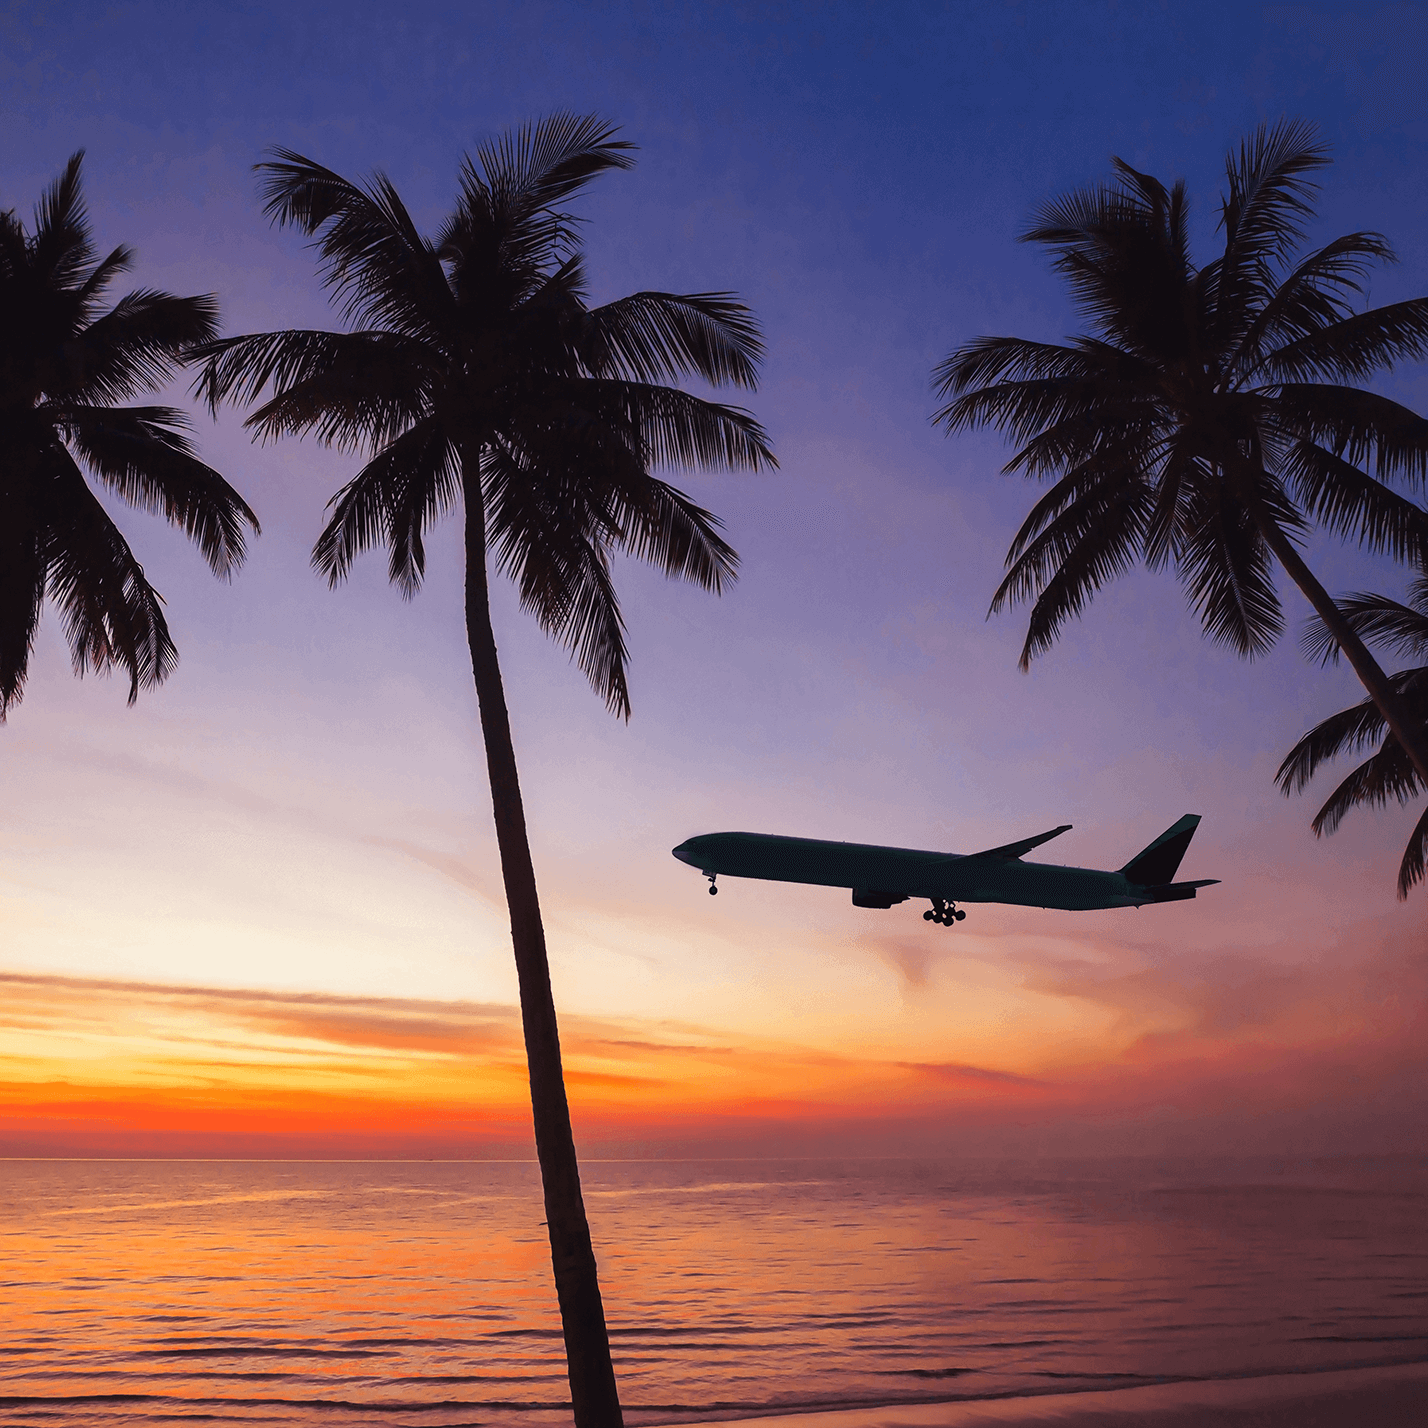 A silhouette of a plane seen flying between two palm trees, against a sunset.